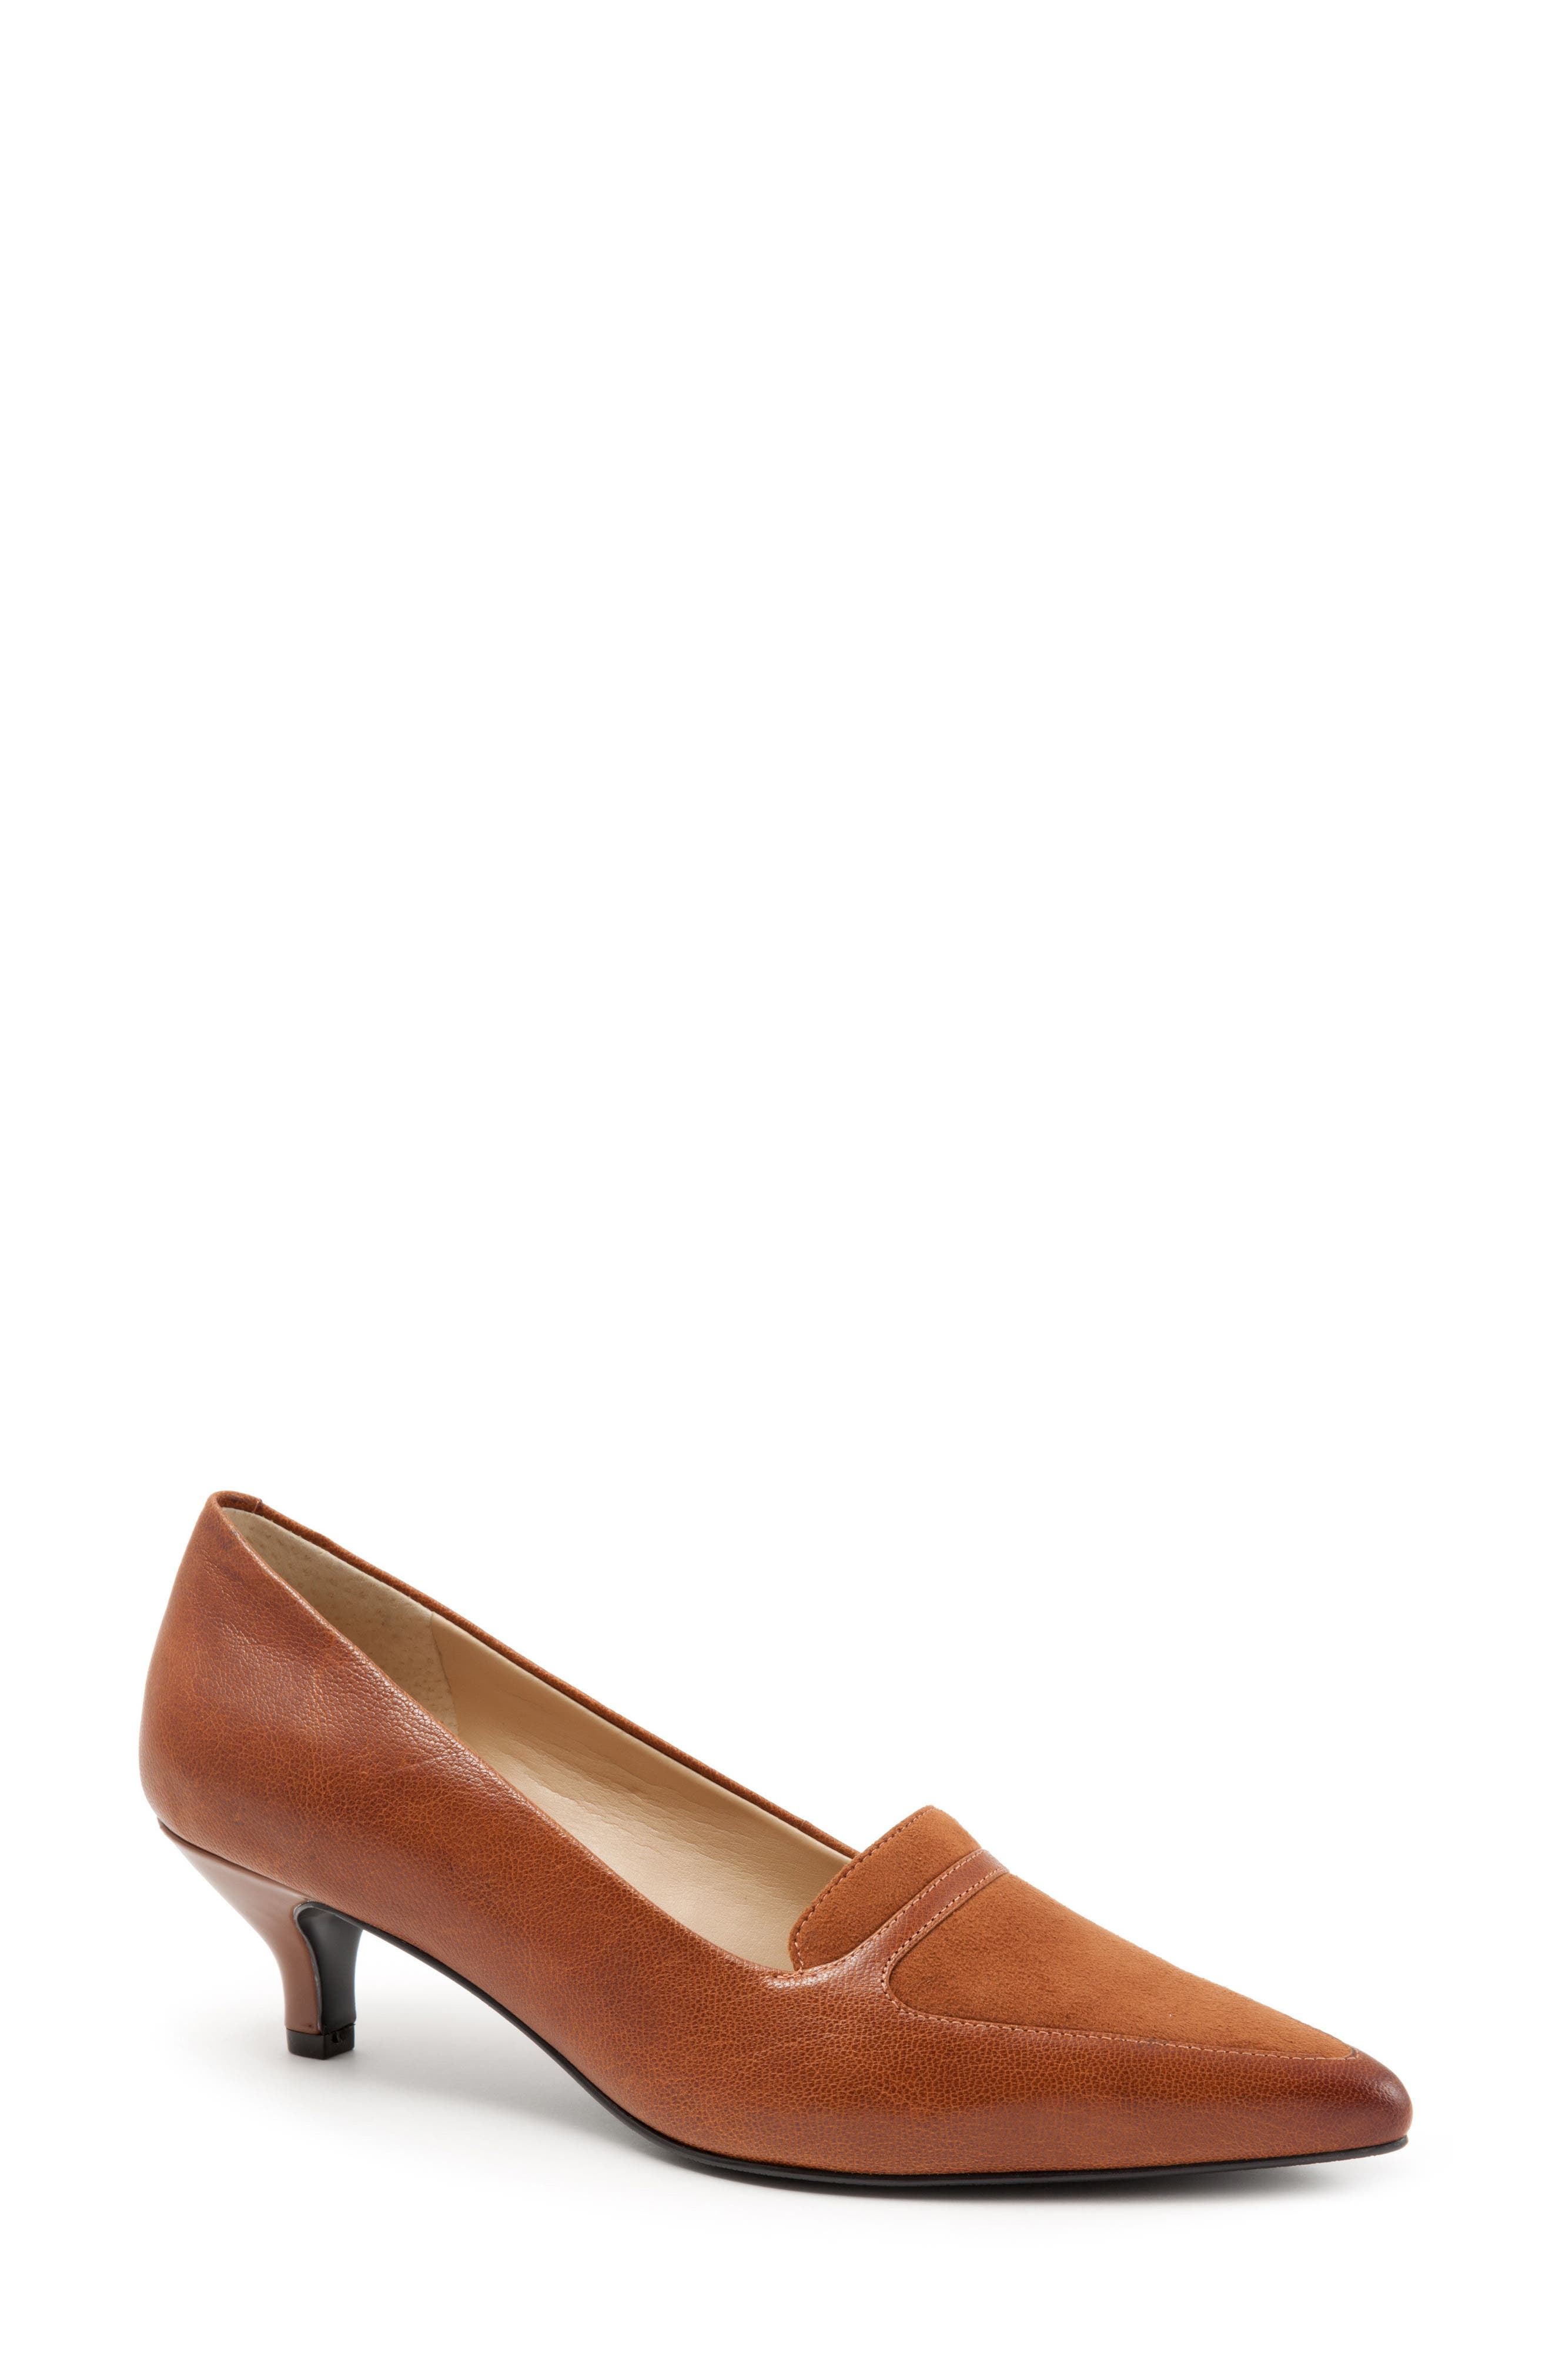 'Piper' Pointy Toe Pump,                             Main thumbnail 1, color,                             Luggage Leather